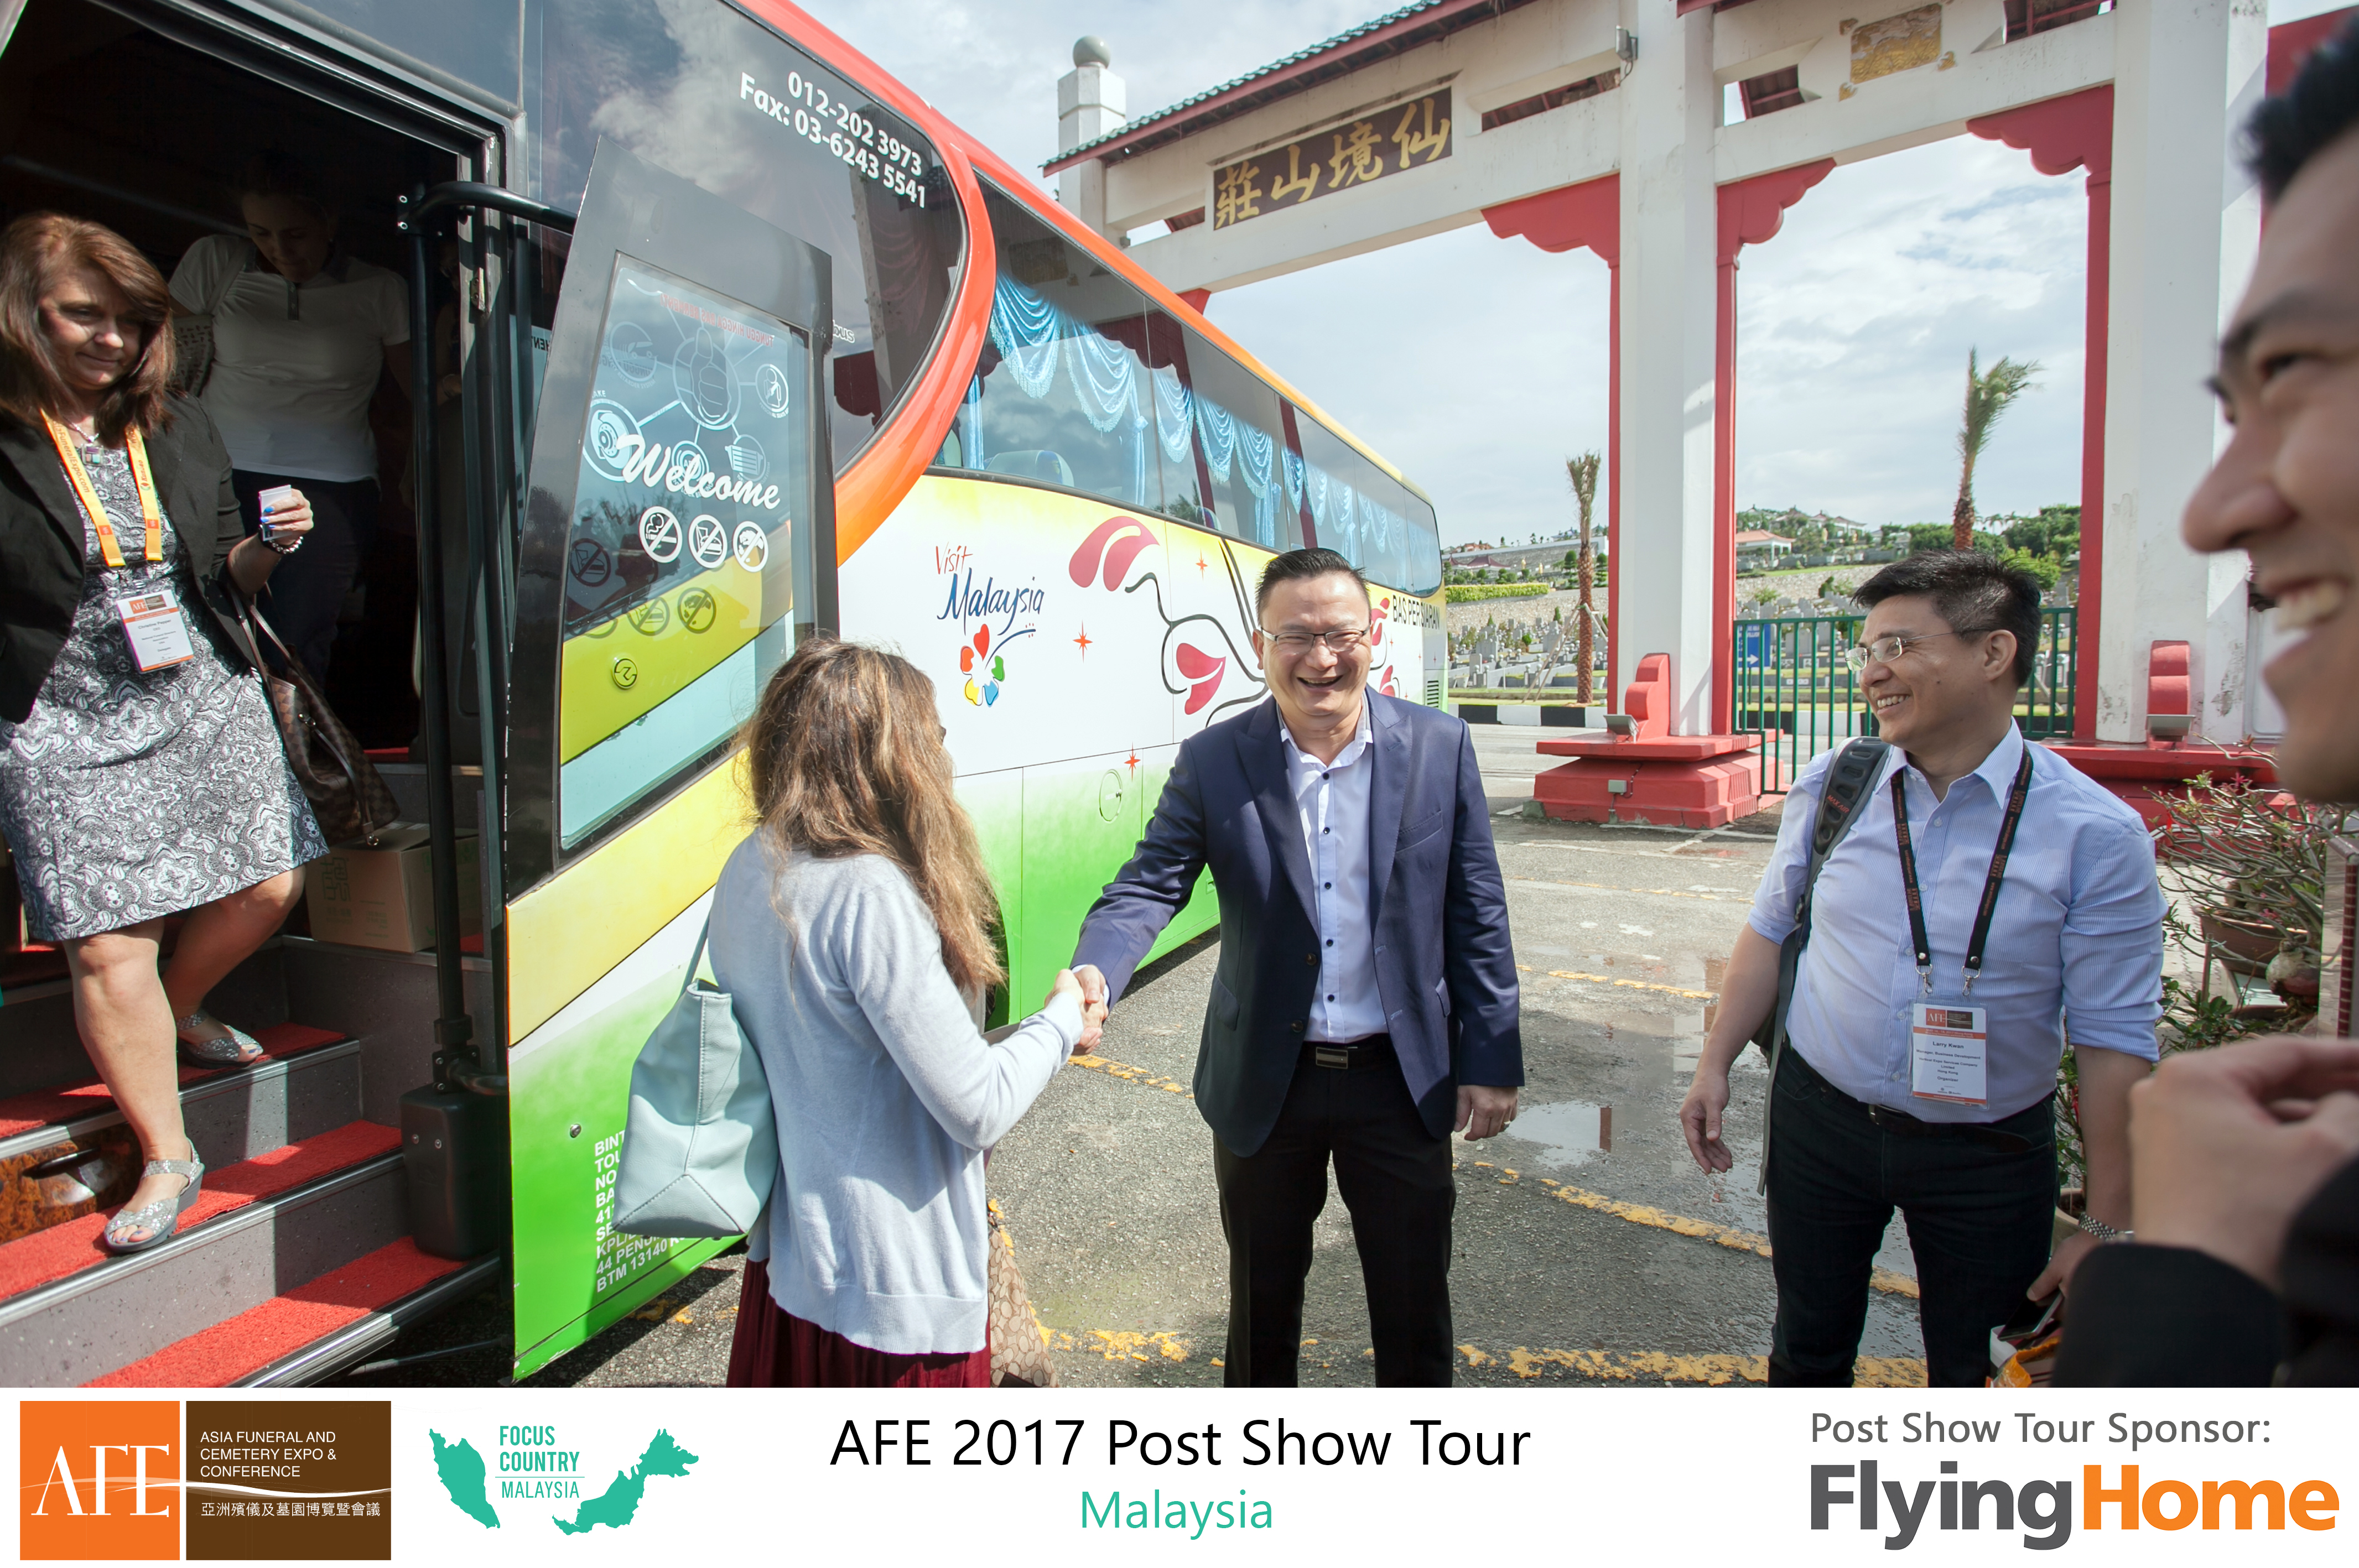 AFE Post Show Tour 2017 Day 4 - 02